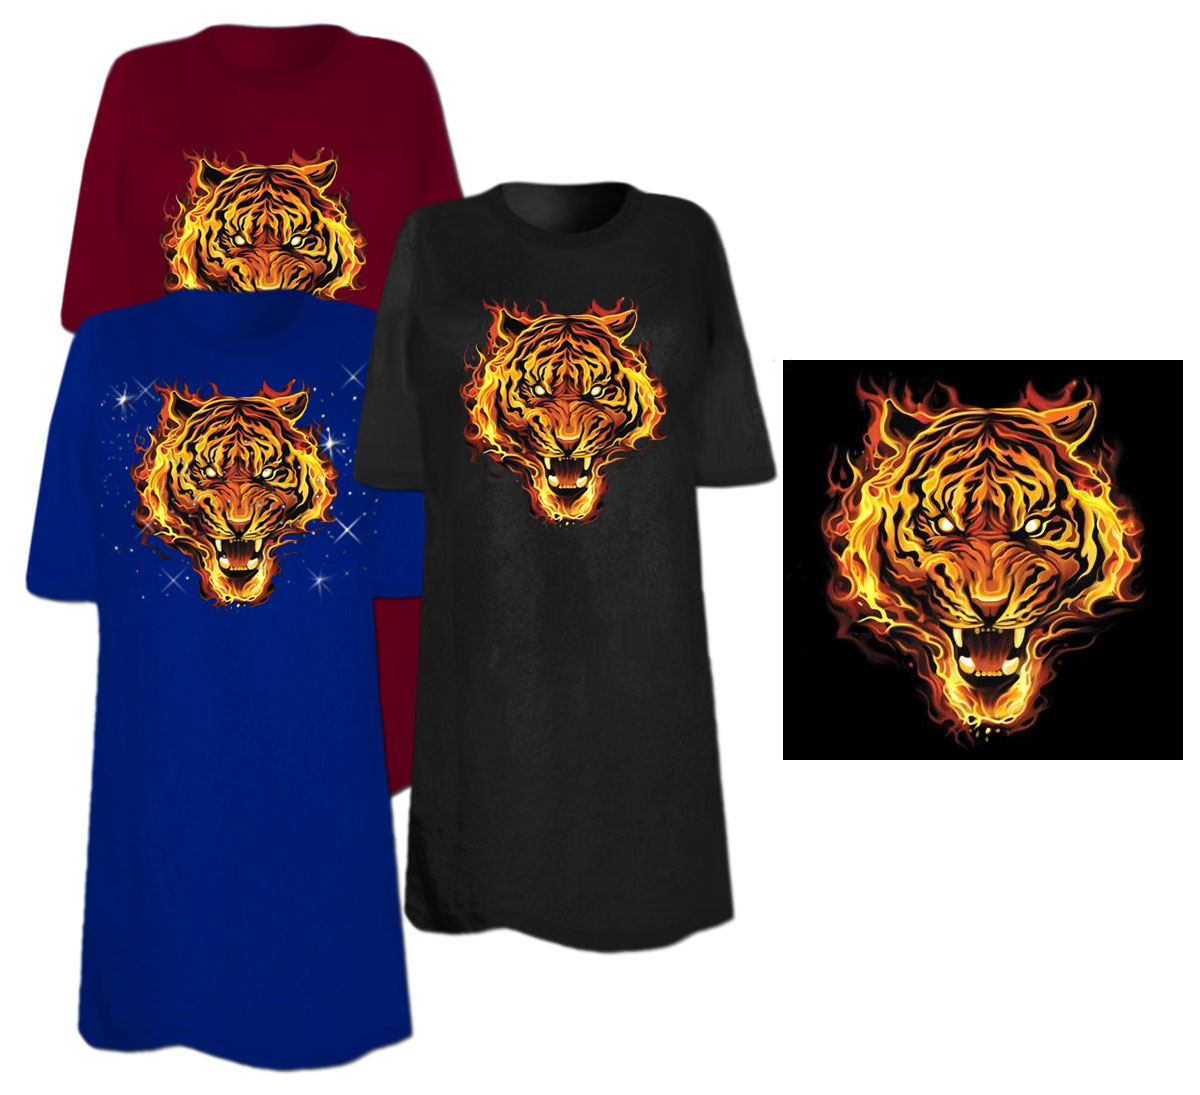 Sale flaming tiger plus size supersize t shirts s m l for 3x shirts on sale